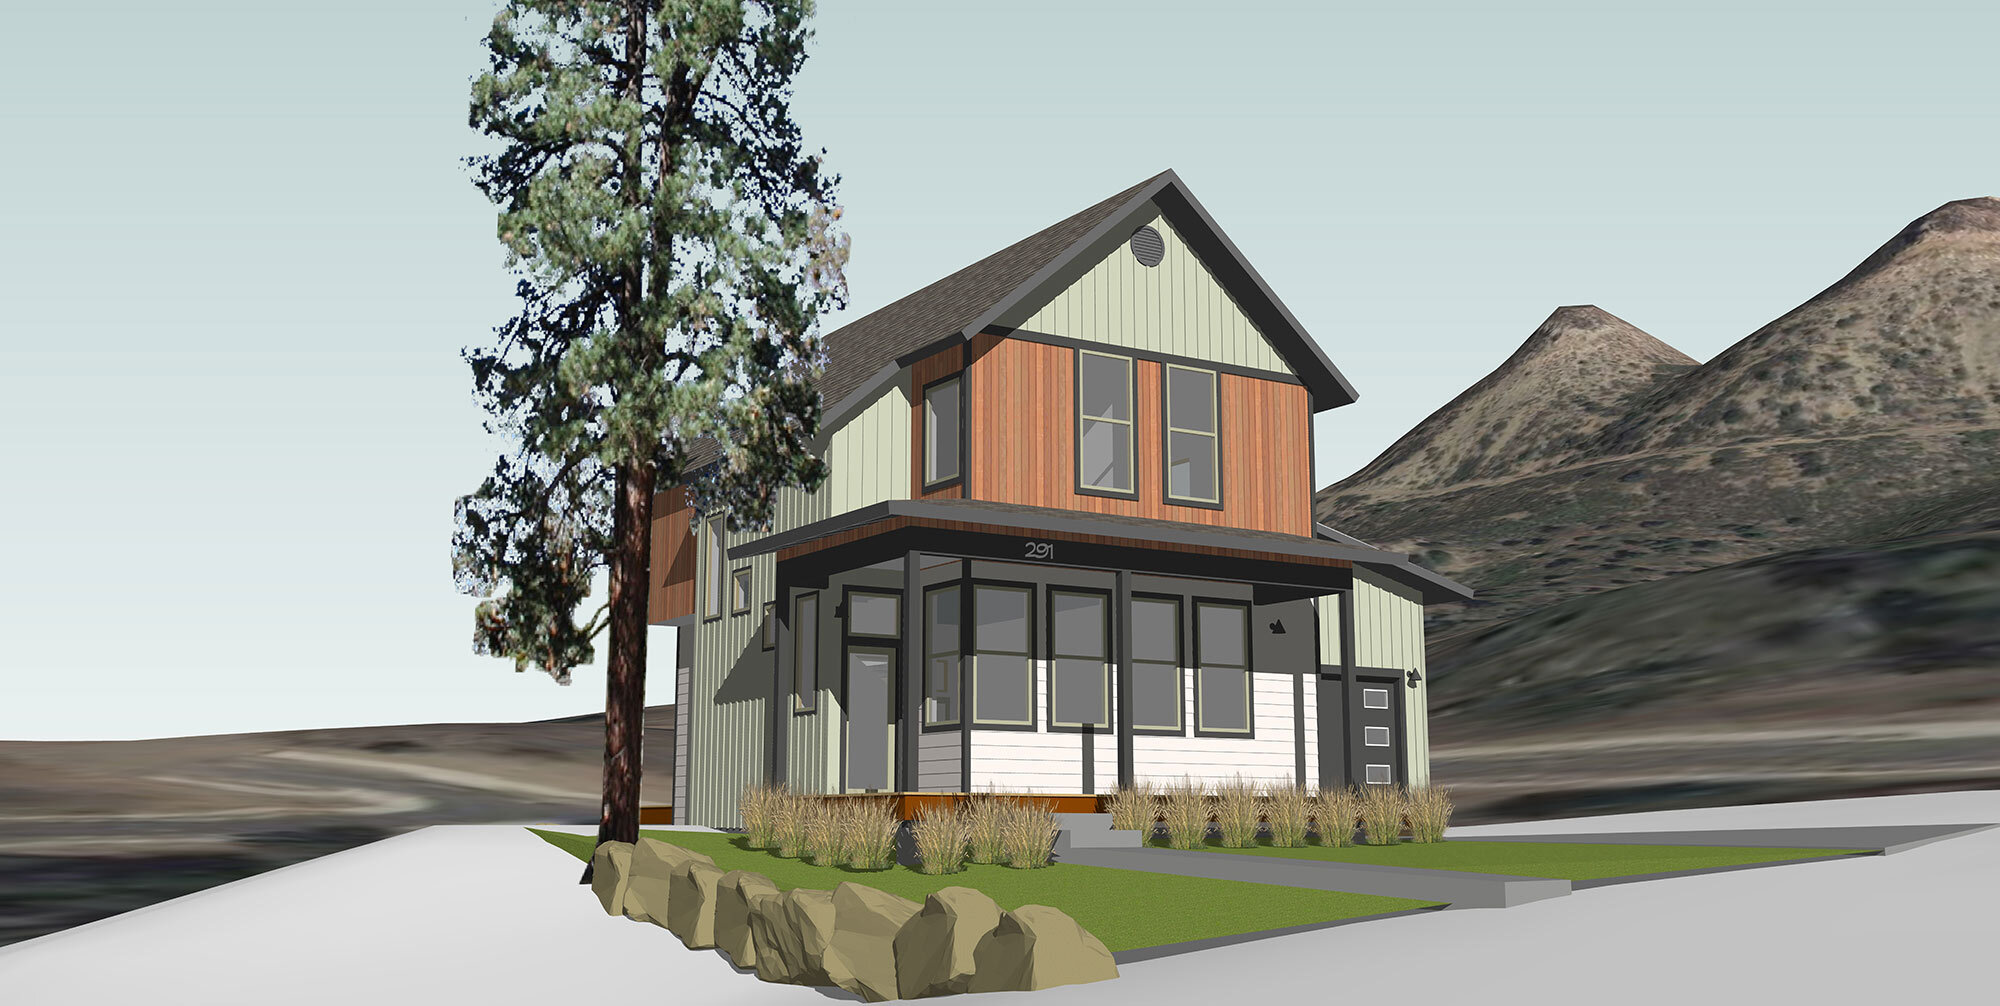 Southwest Colorado home construction rendering: The Telluride design from Silver Mountain Group